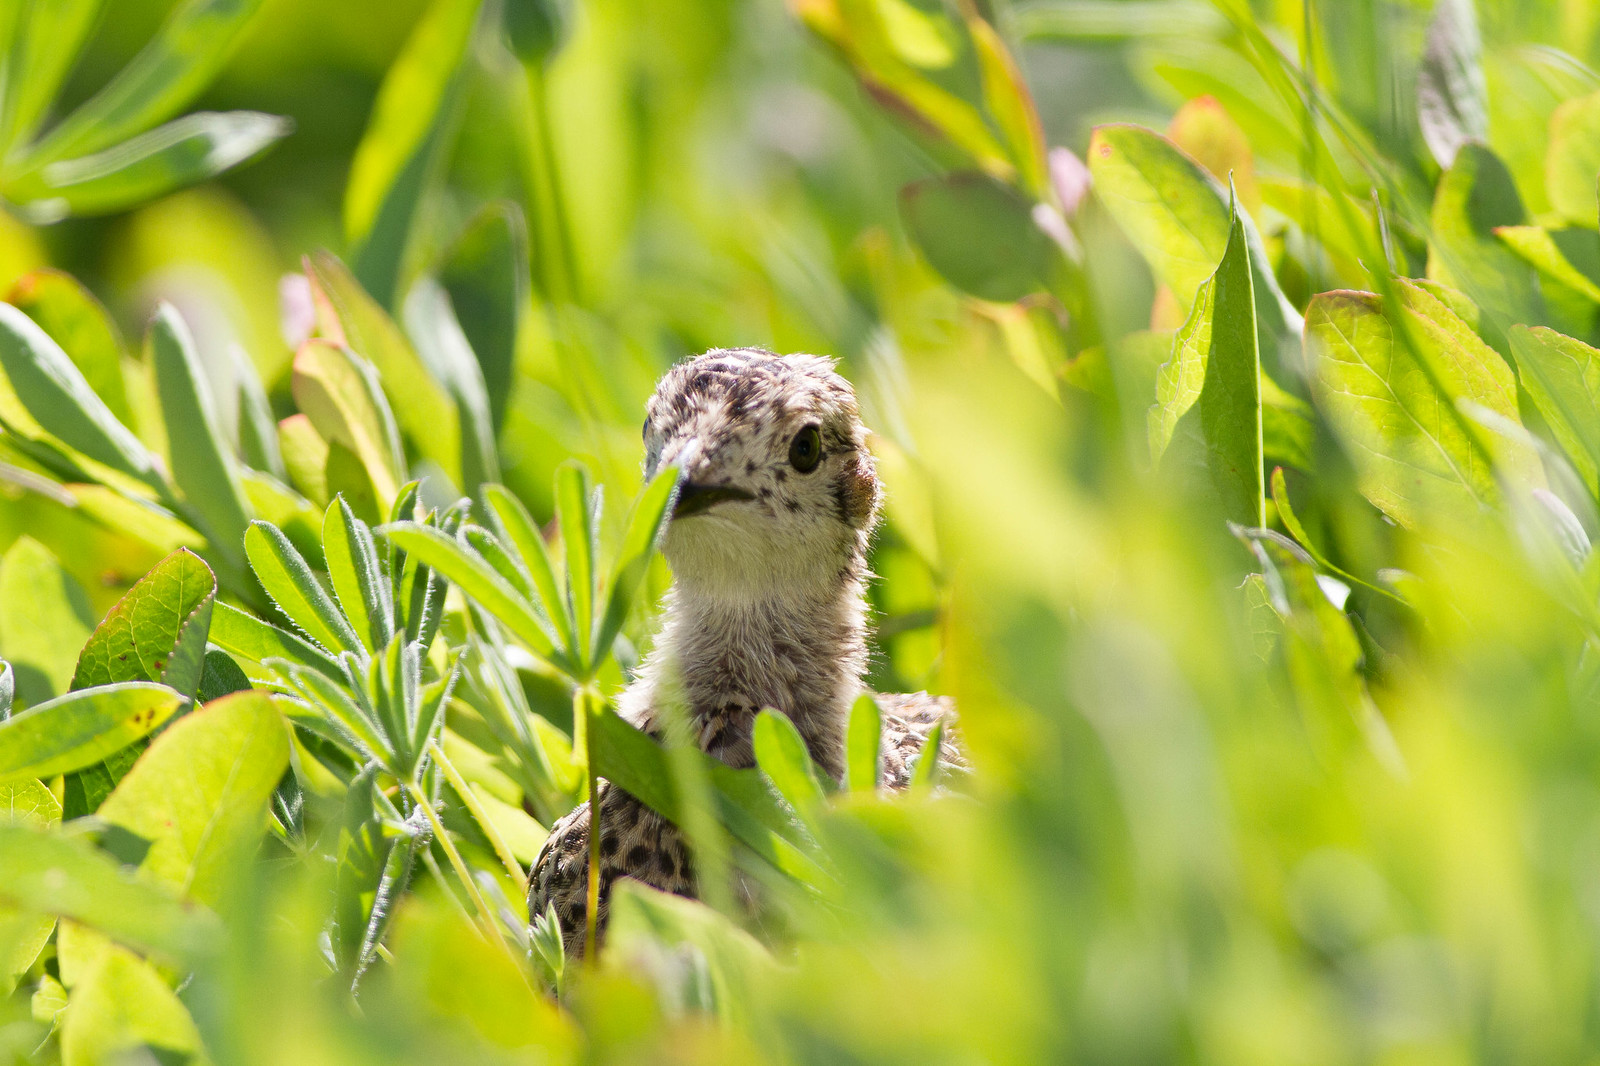 Sooty Grouse Chick in the grass